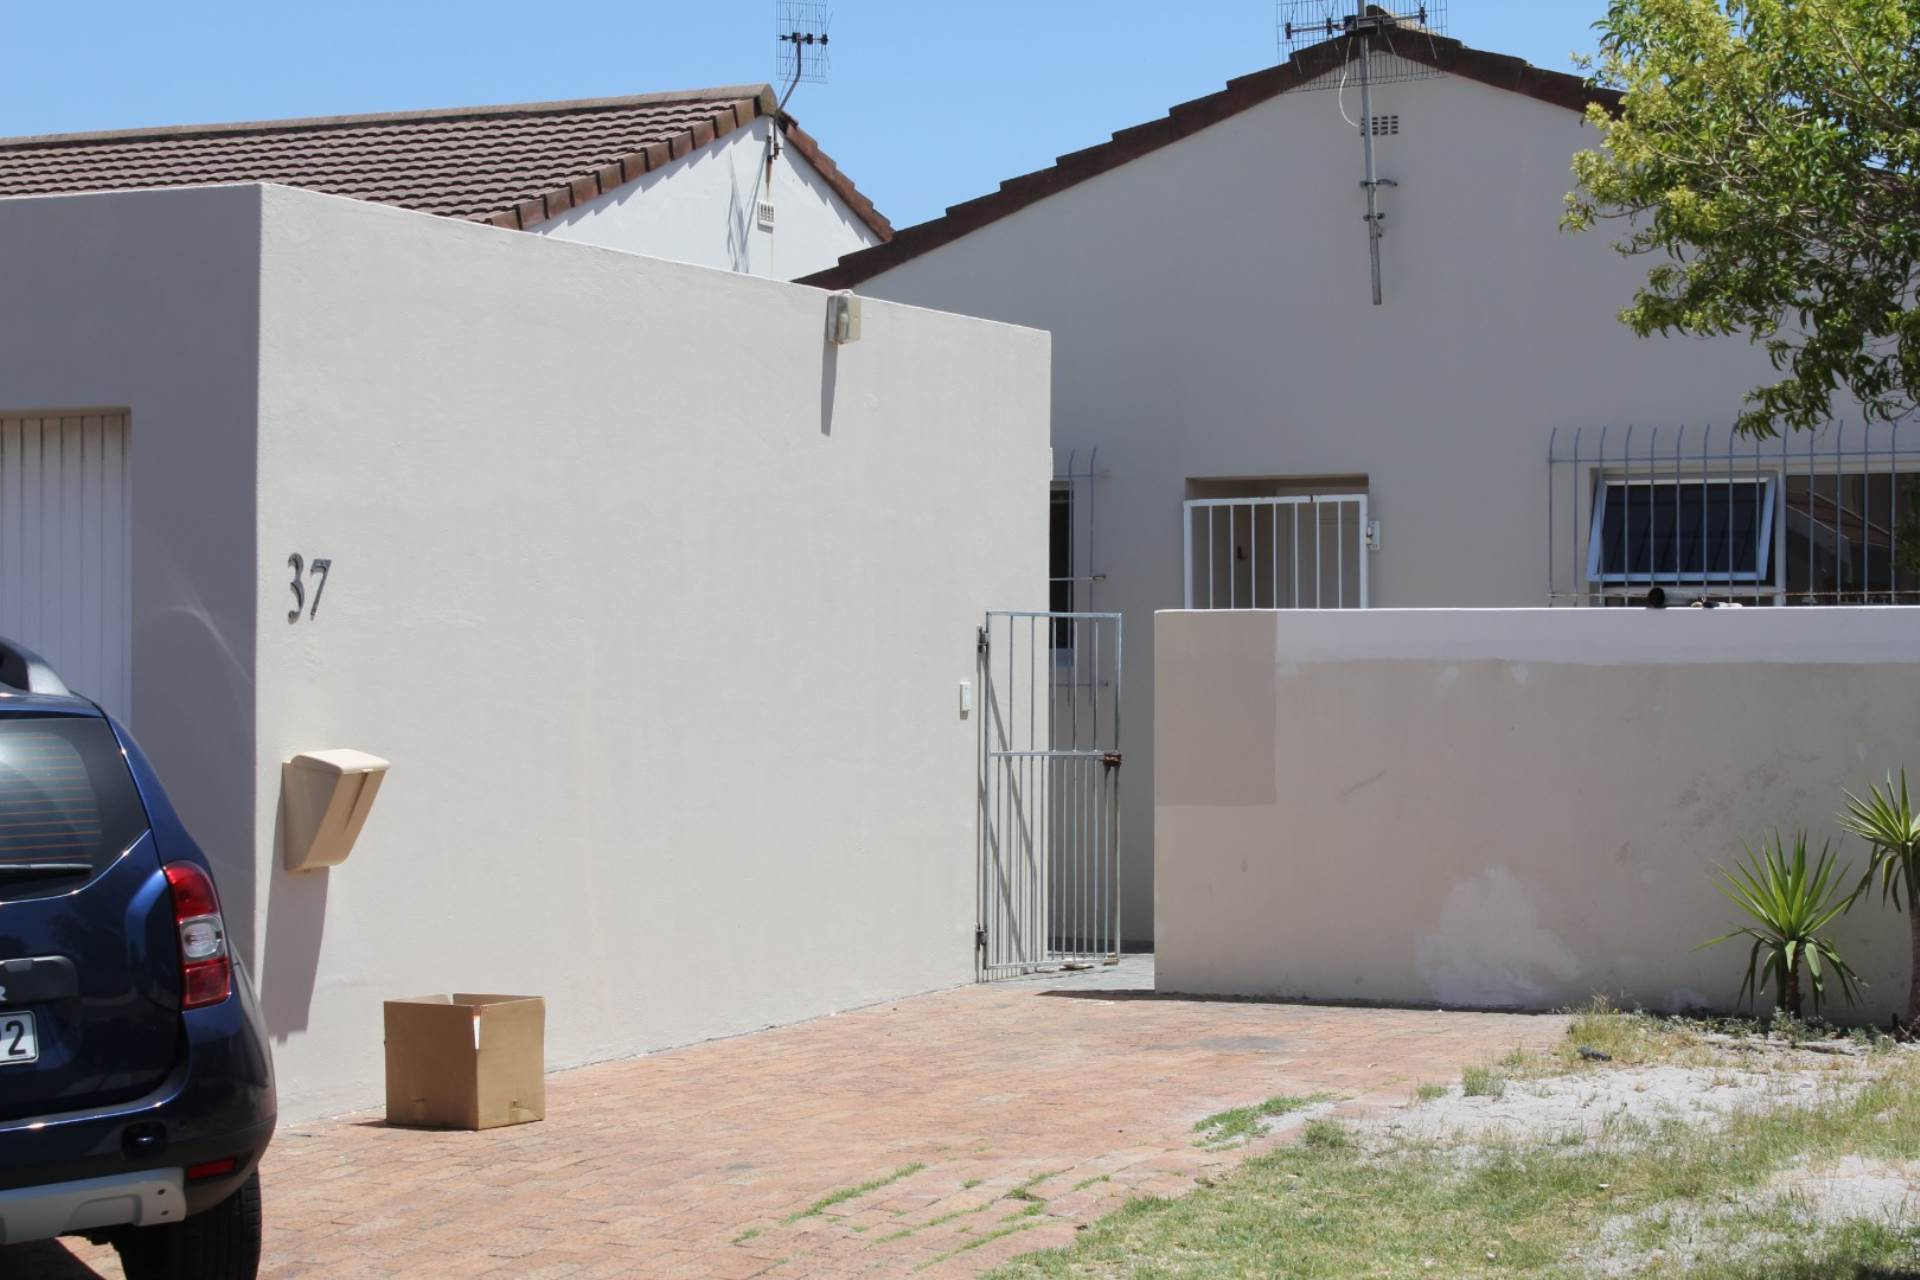 3 BedroomHouse To Rent In Table View